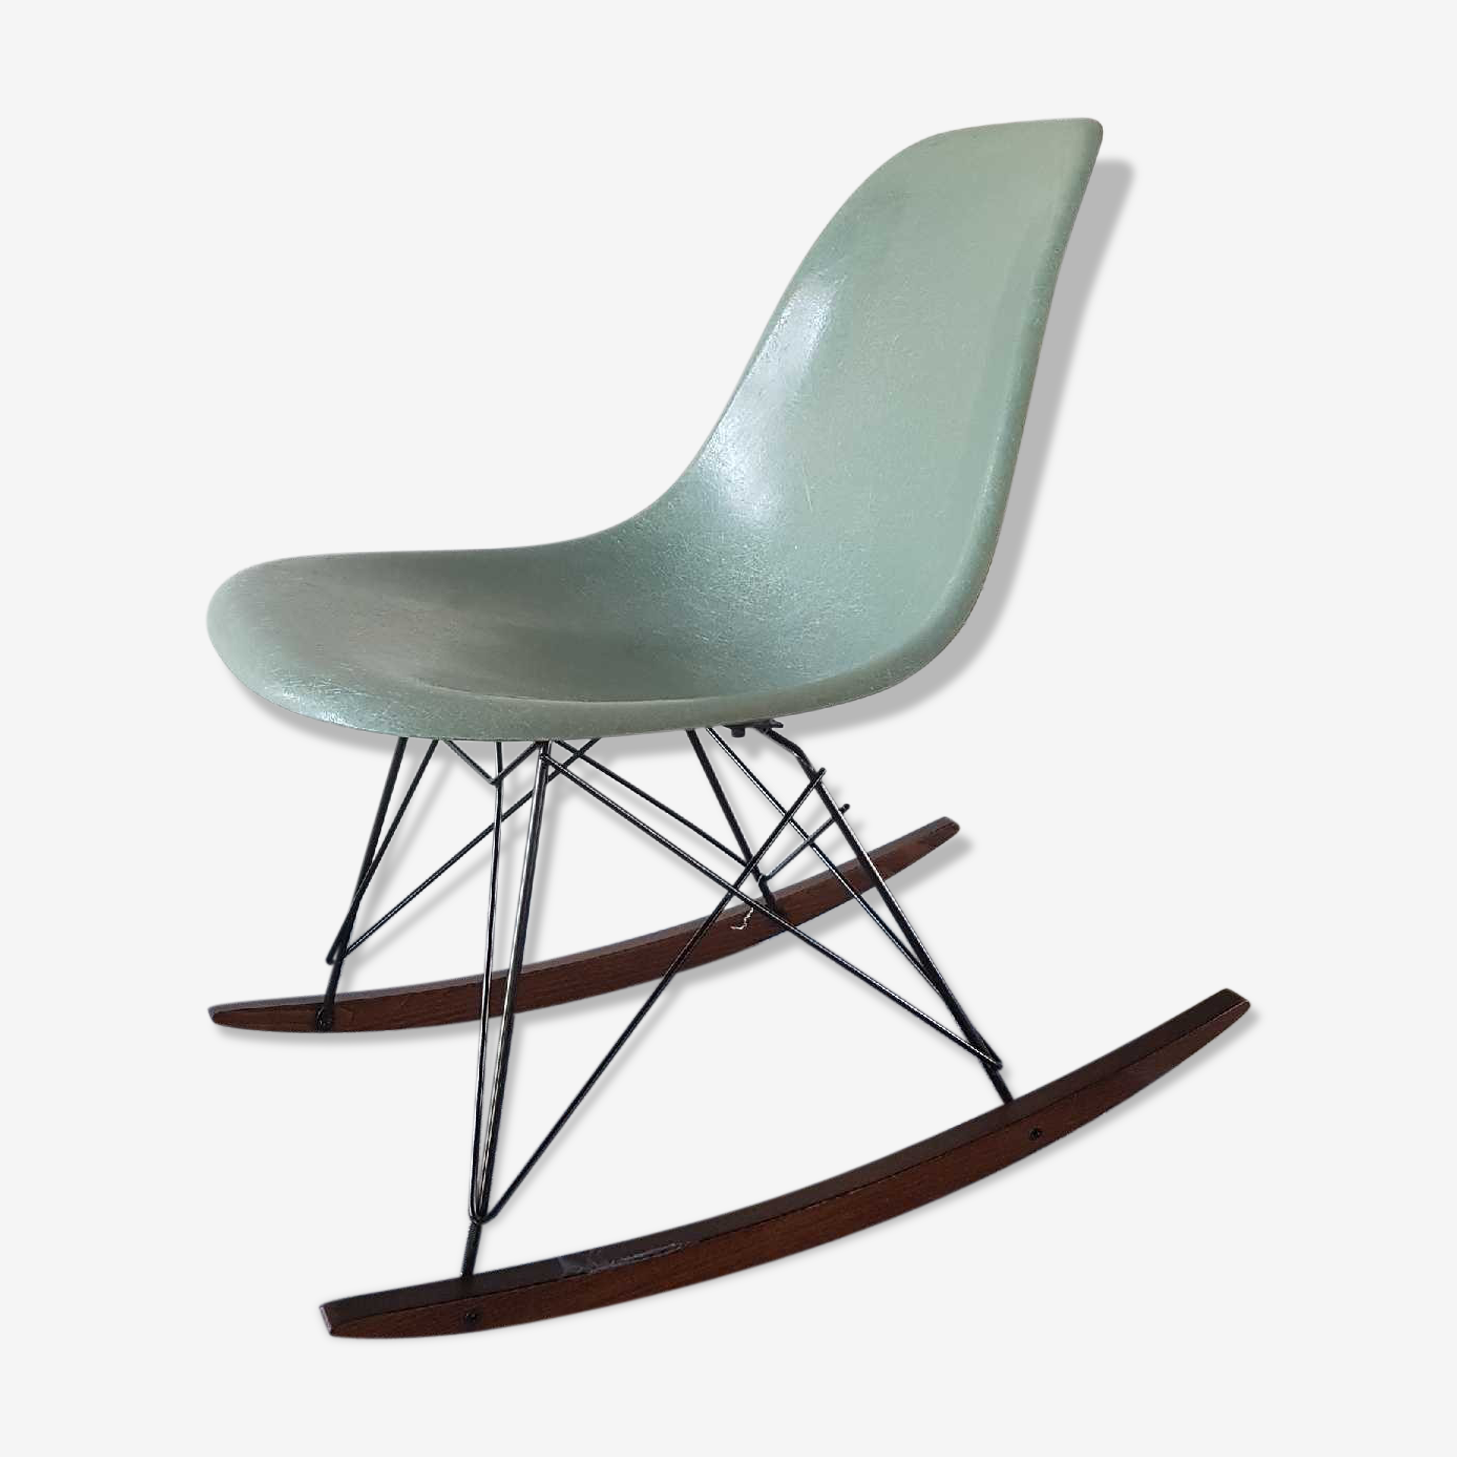 Seafoam rocking chair by Eames for Herman Miller